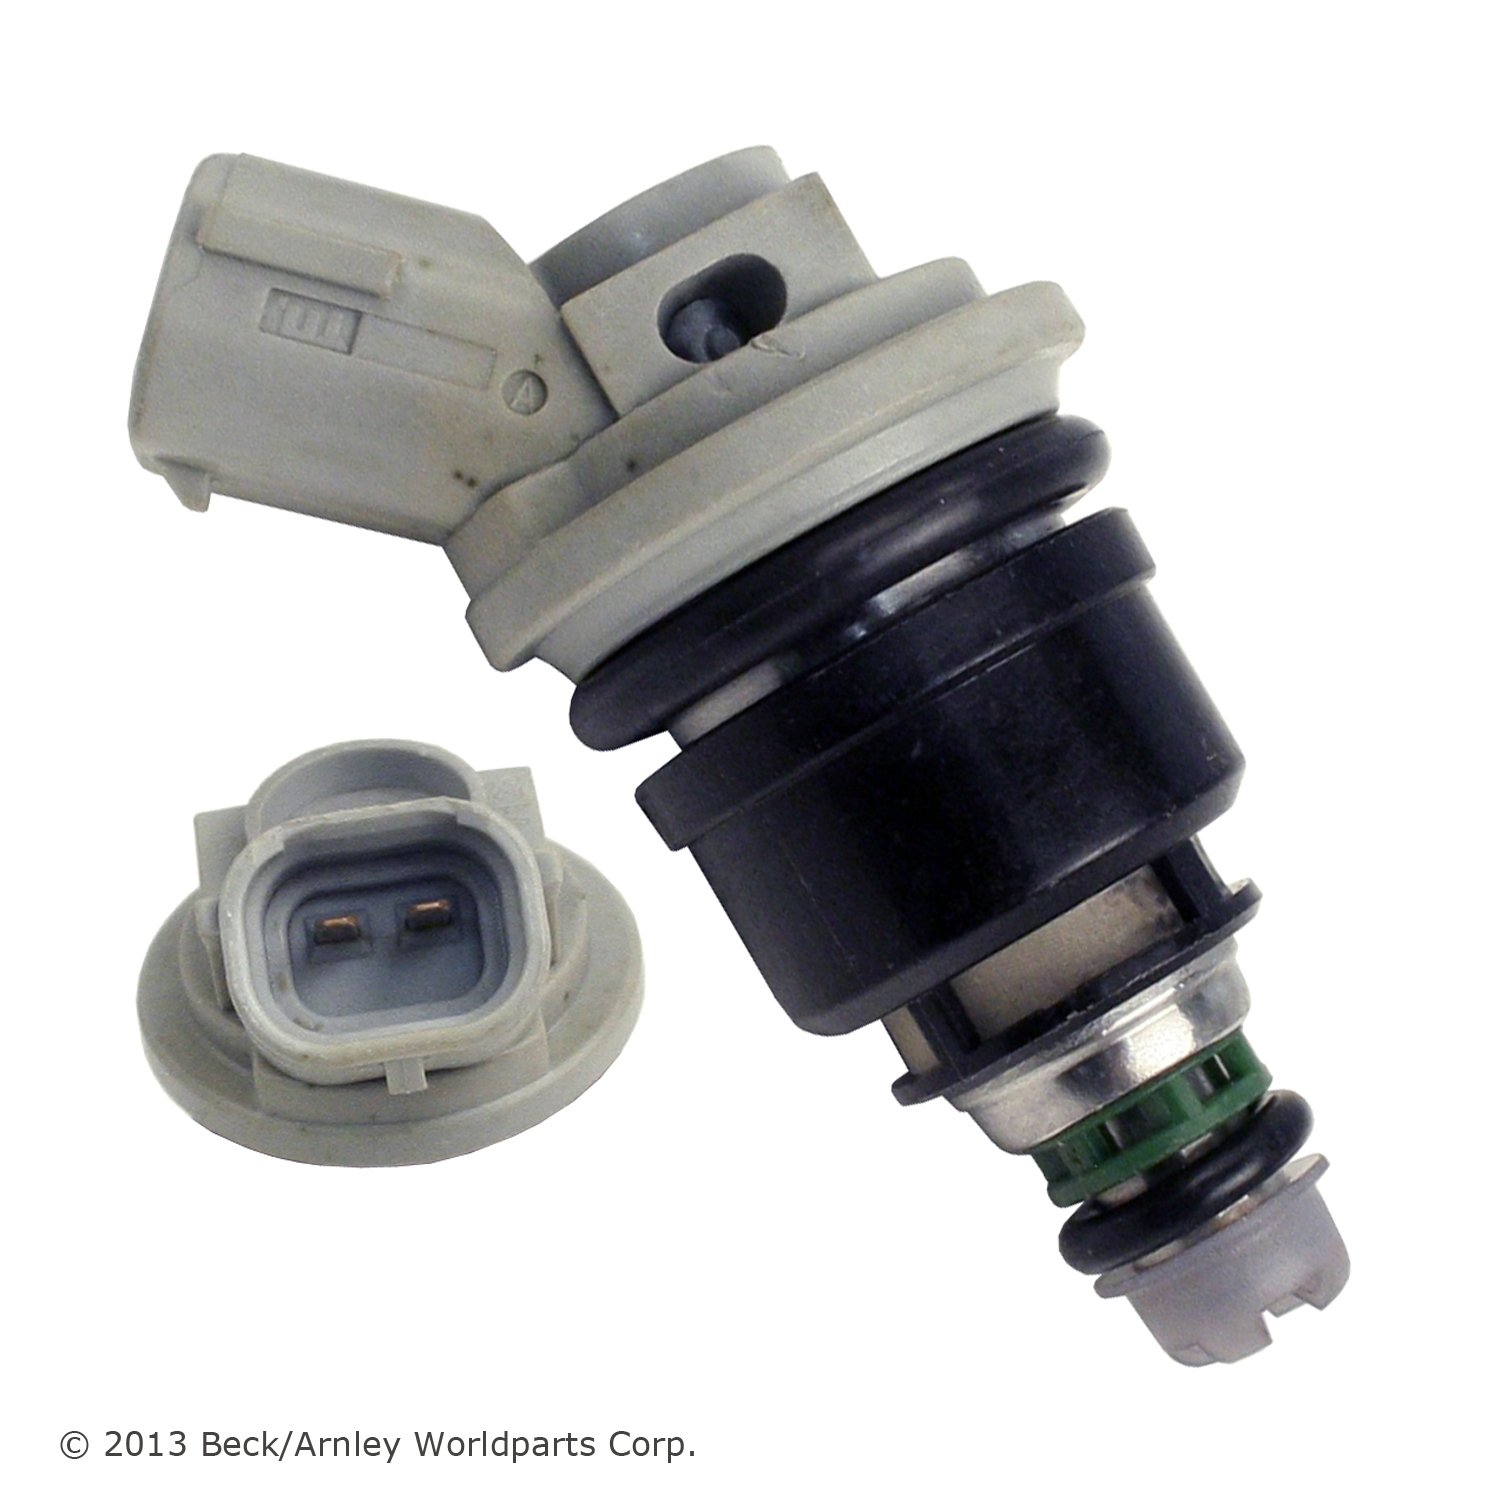 1996 Subaru Impreza Fuel Injector 2013 Filter Location Ba 155 0190